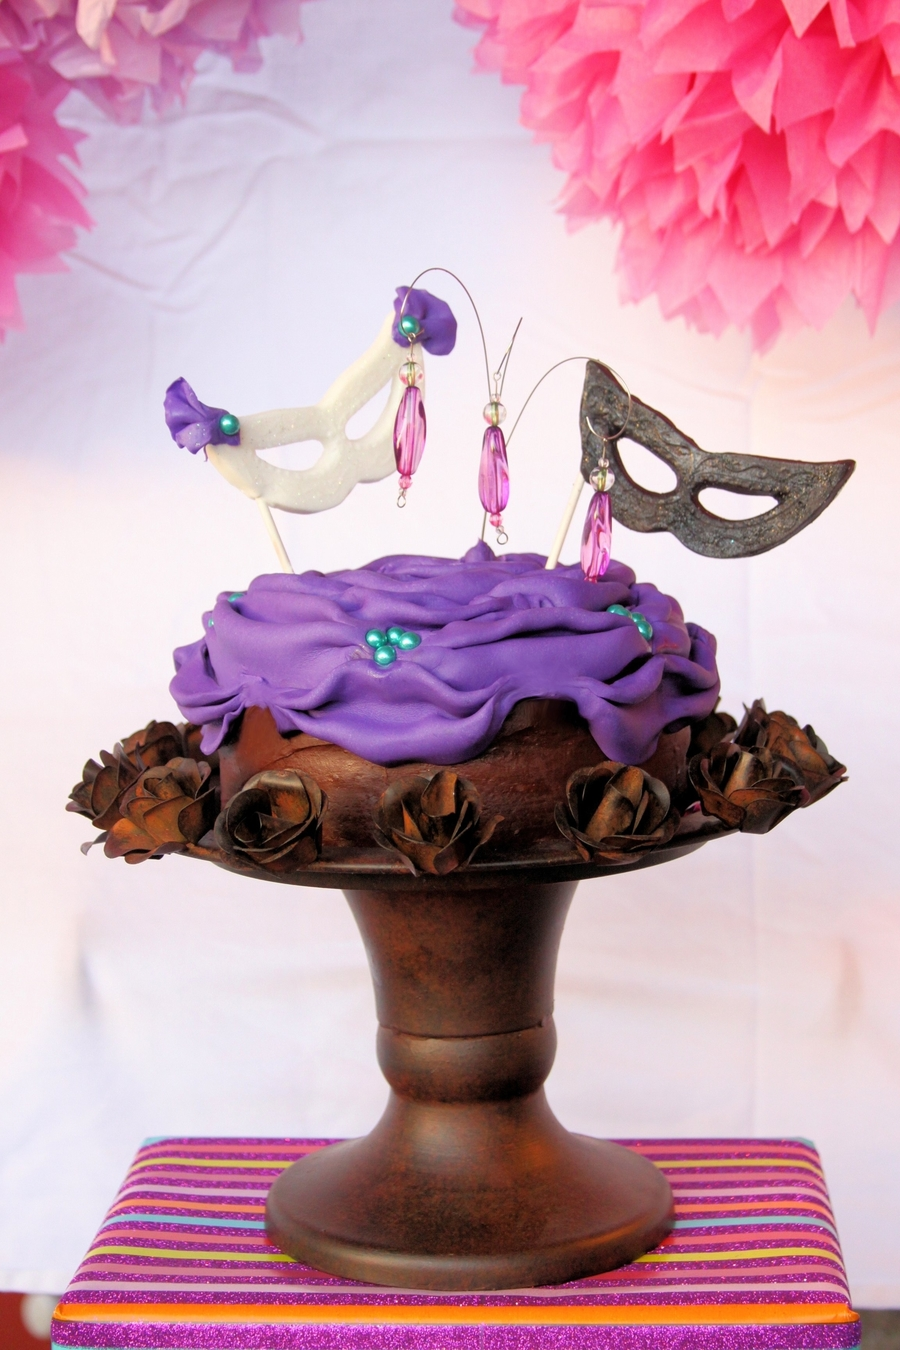 It's A Masquerade! on Cake Central